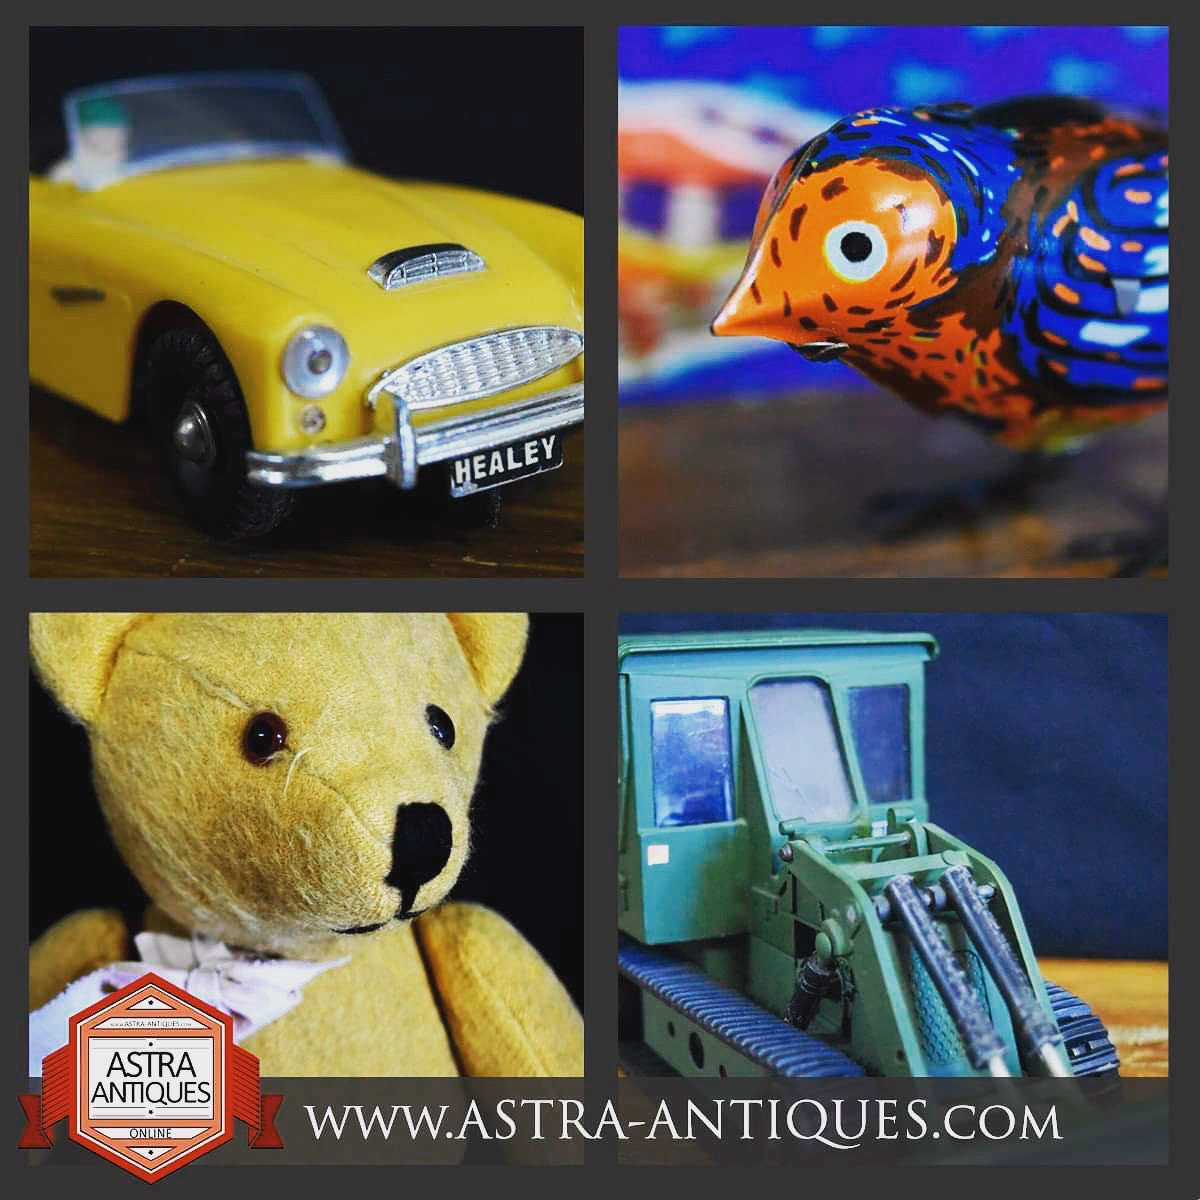 New items added to our toy section over on the website where you can have a virtual shopping experience @www.astra-antiques.com #vintage #retro #vintagehomeware #retrohomestyling #vintagetools #virtualantiquesshopping #astraantiquescentre #hemswell #lincolnshire  #toys #vintage https://t.co/P2zCt2fhNa